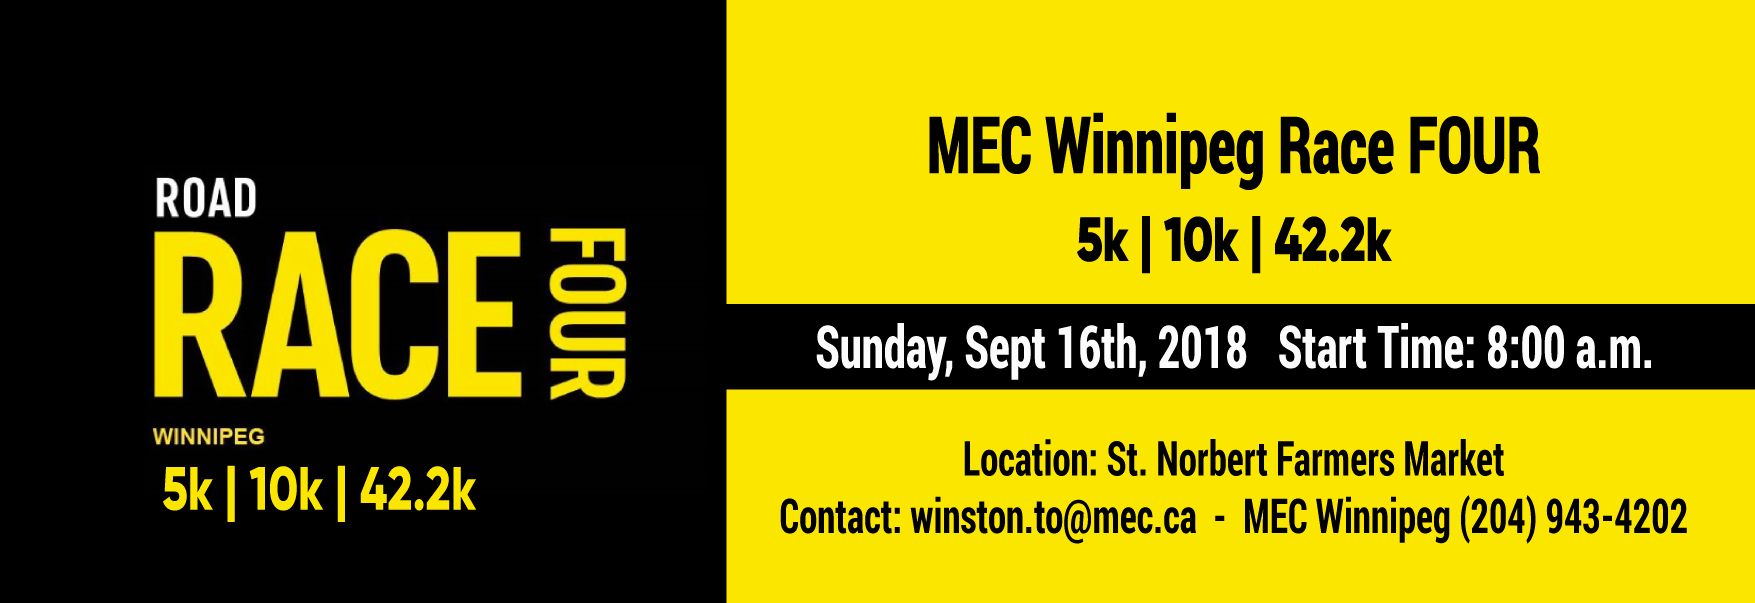 MEC Winnipeg Race Four